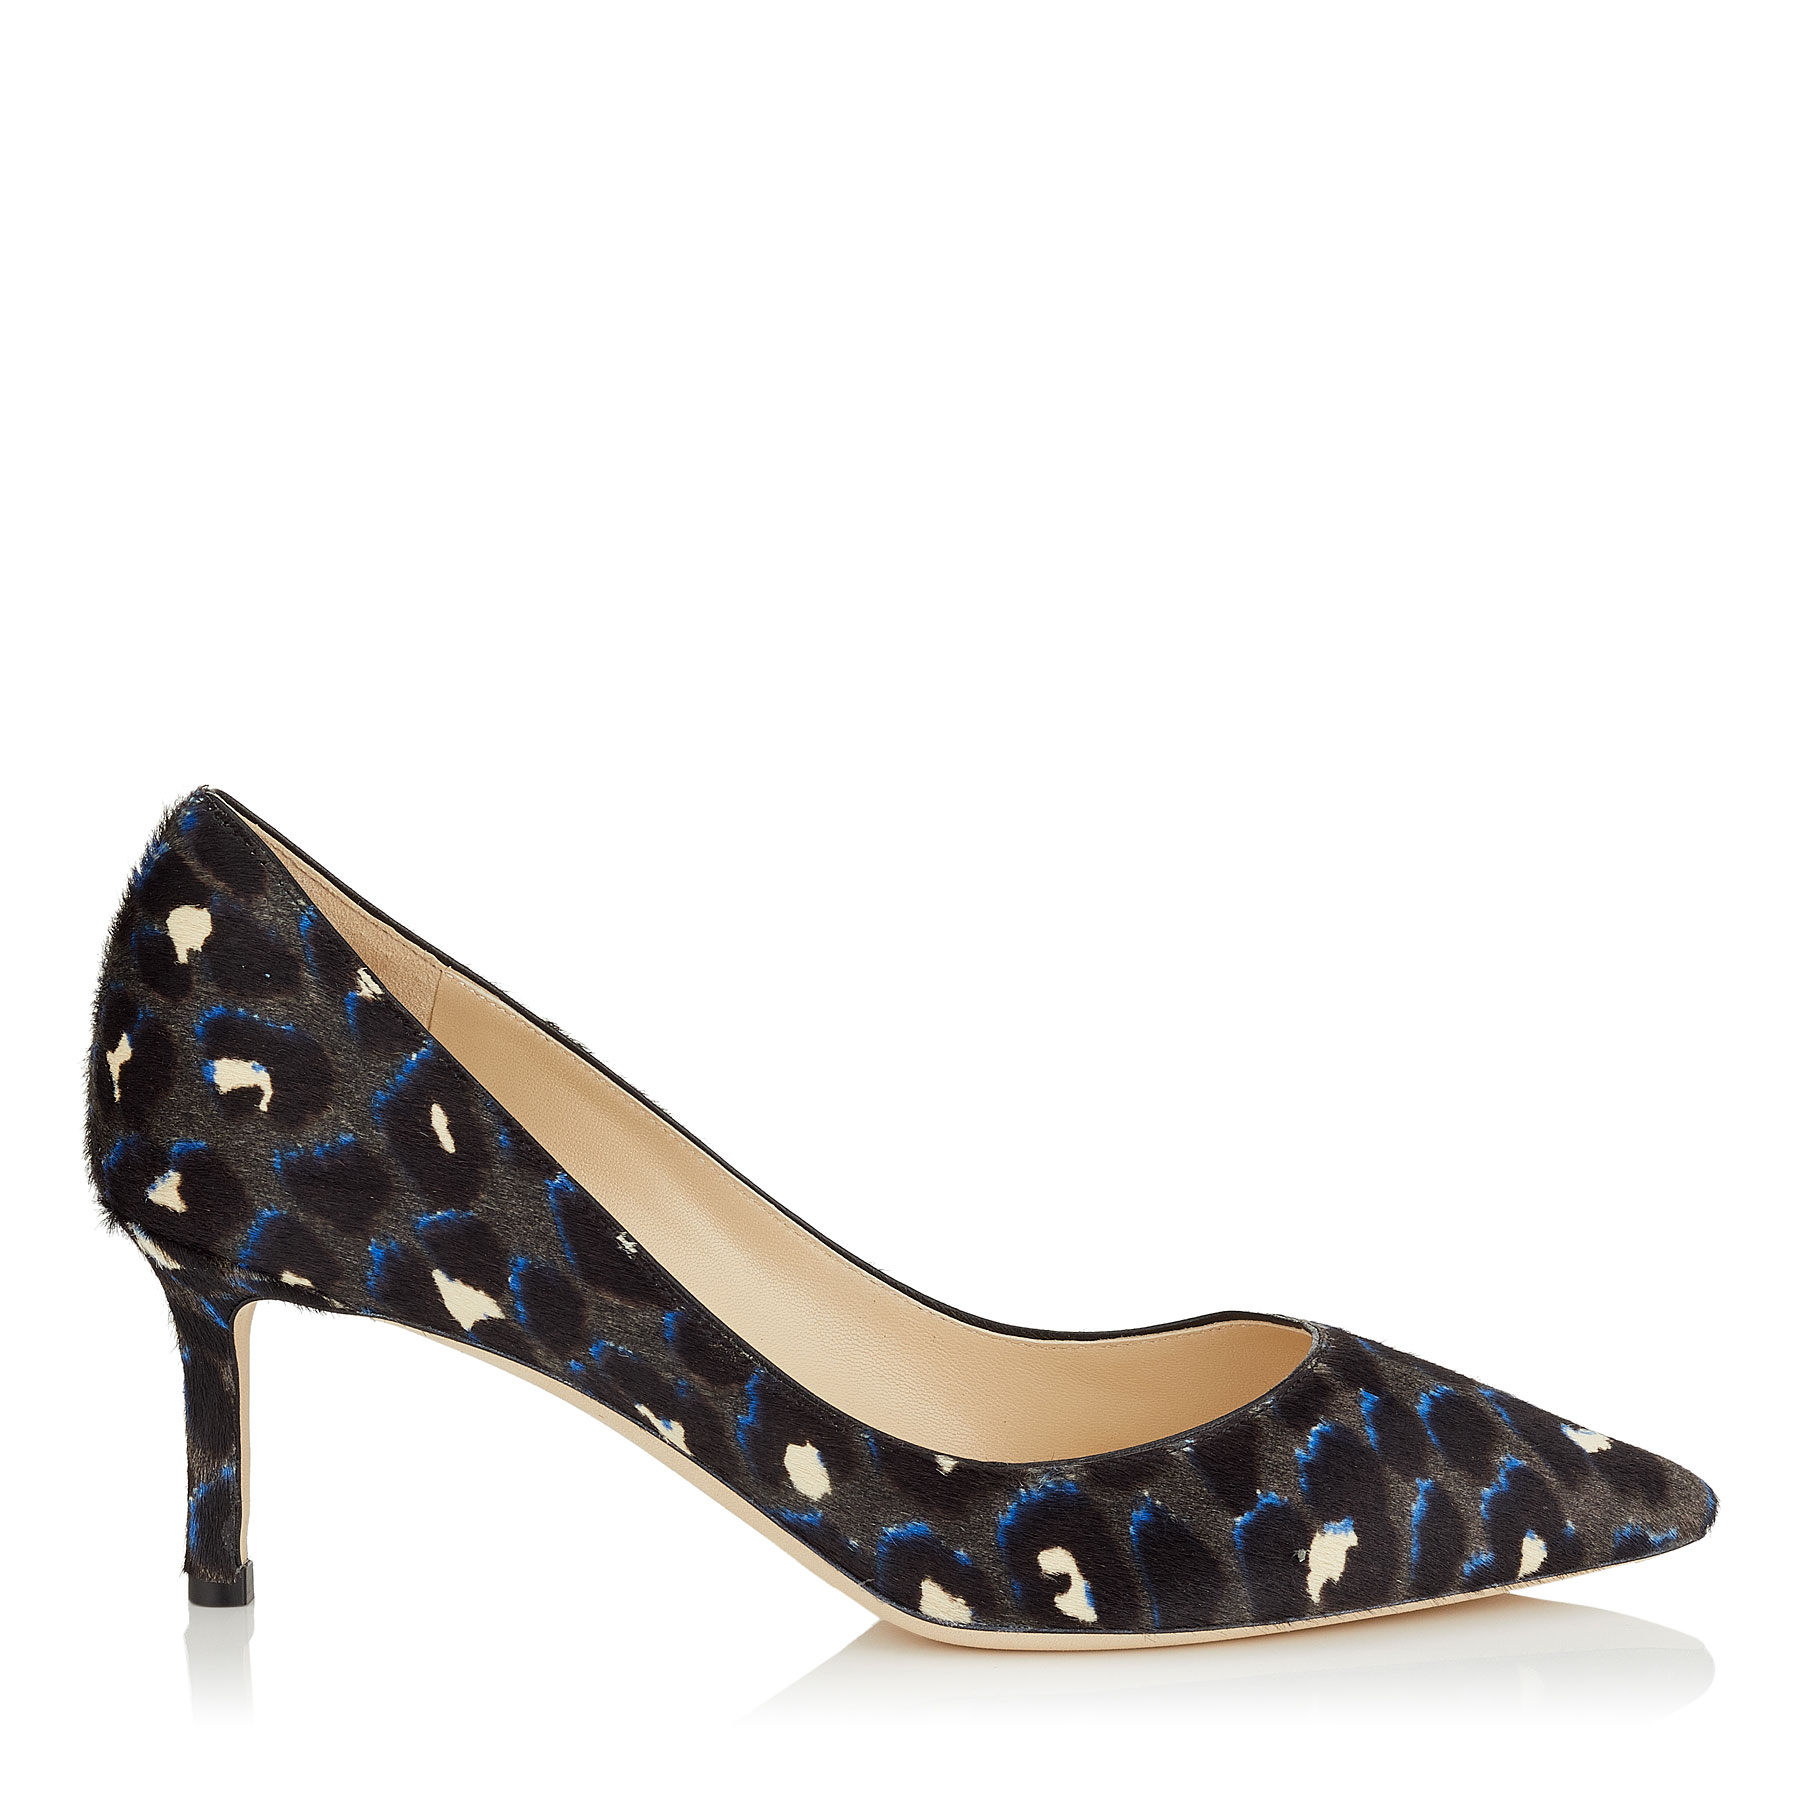 ROMY 60 Pop Blue Mix Leopard Print Pony Pointed Toe Pumps by Jimmy Choo